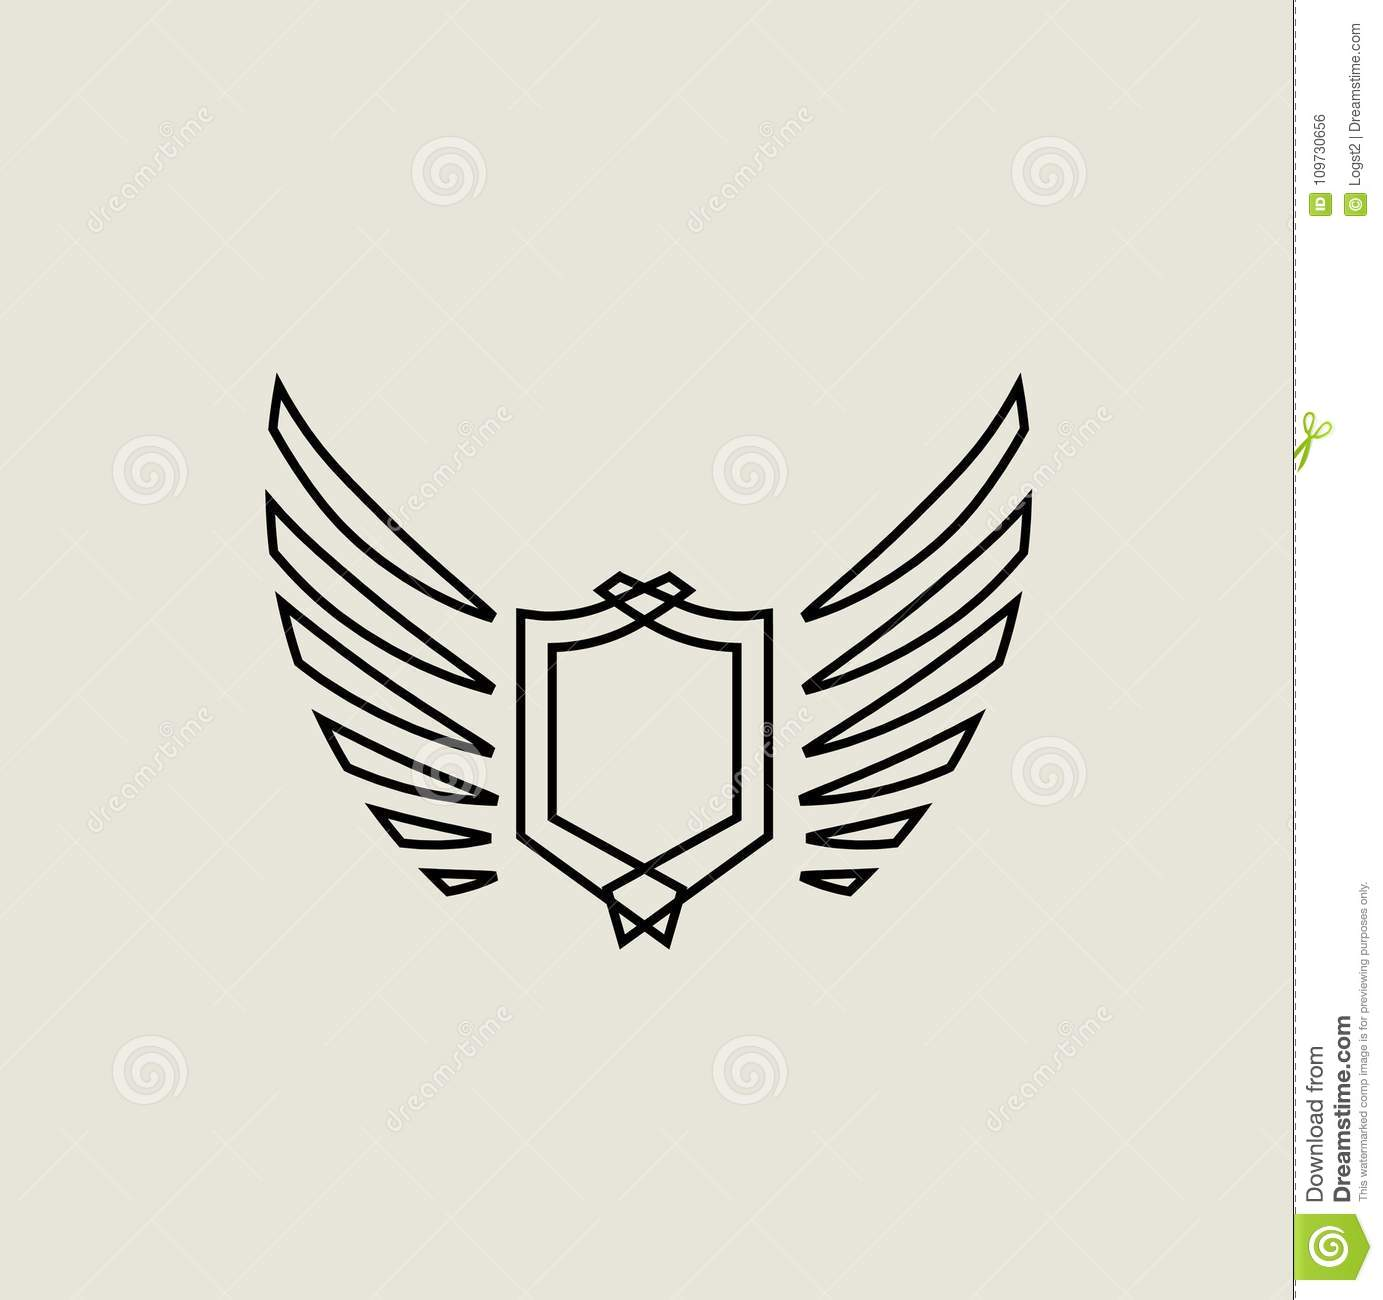 wings logo vector icon sign graphic illustration symbol eagle wing brand fly emblem stock vector illustration of beautiful insignia 109730656 https www dreamstime com wings blazon vector logo wing icon flying design element fly emblem sign symbol graphic illustration eagle brand image109730656